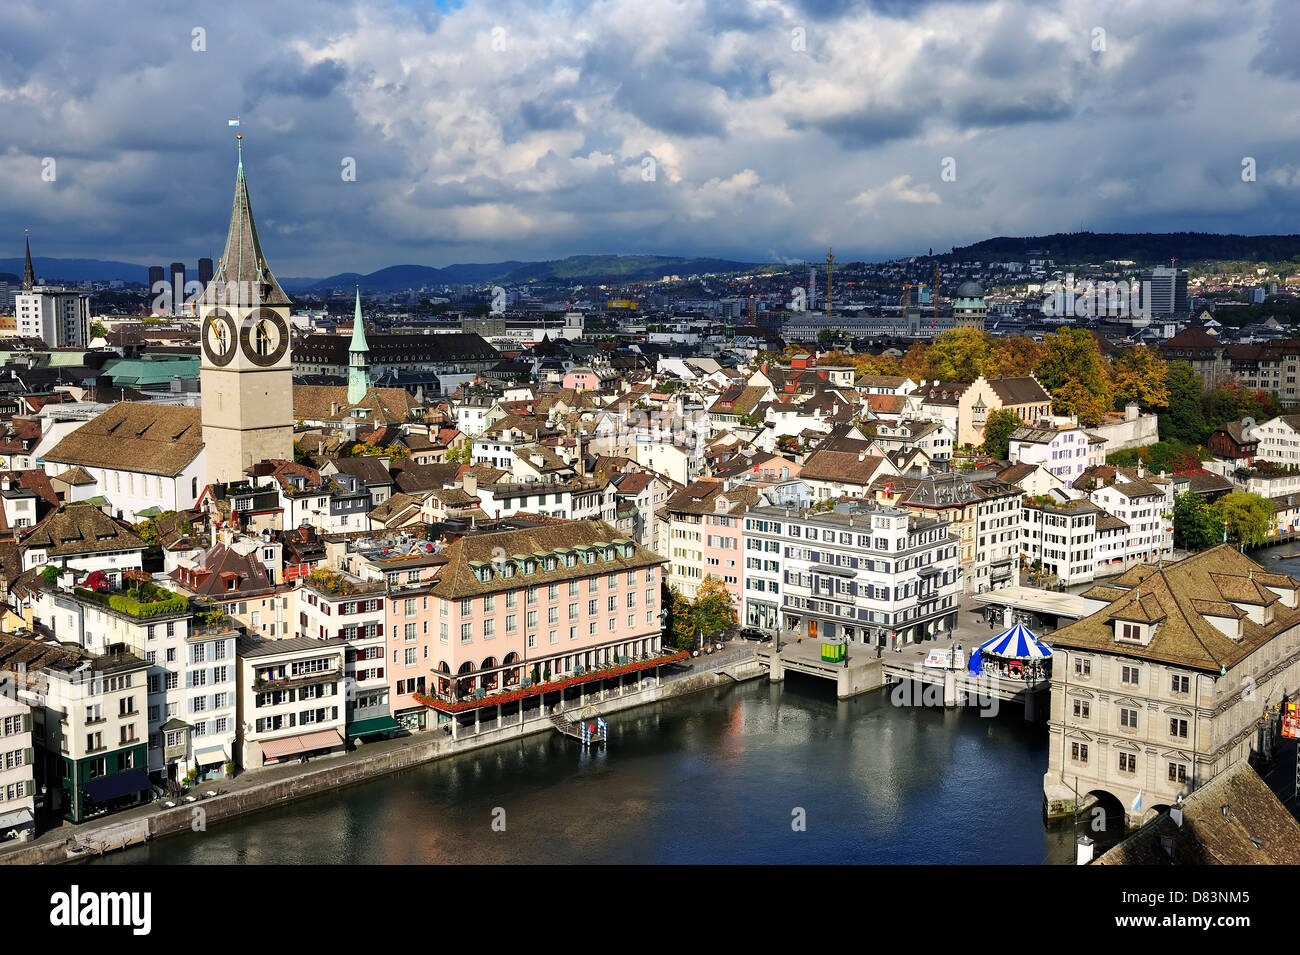 The aerial view of Zurich cityscape, Switzerland - Stock Image